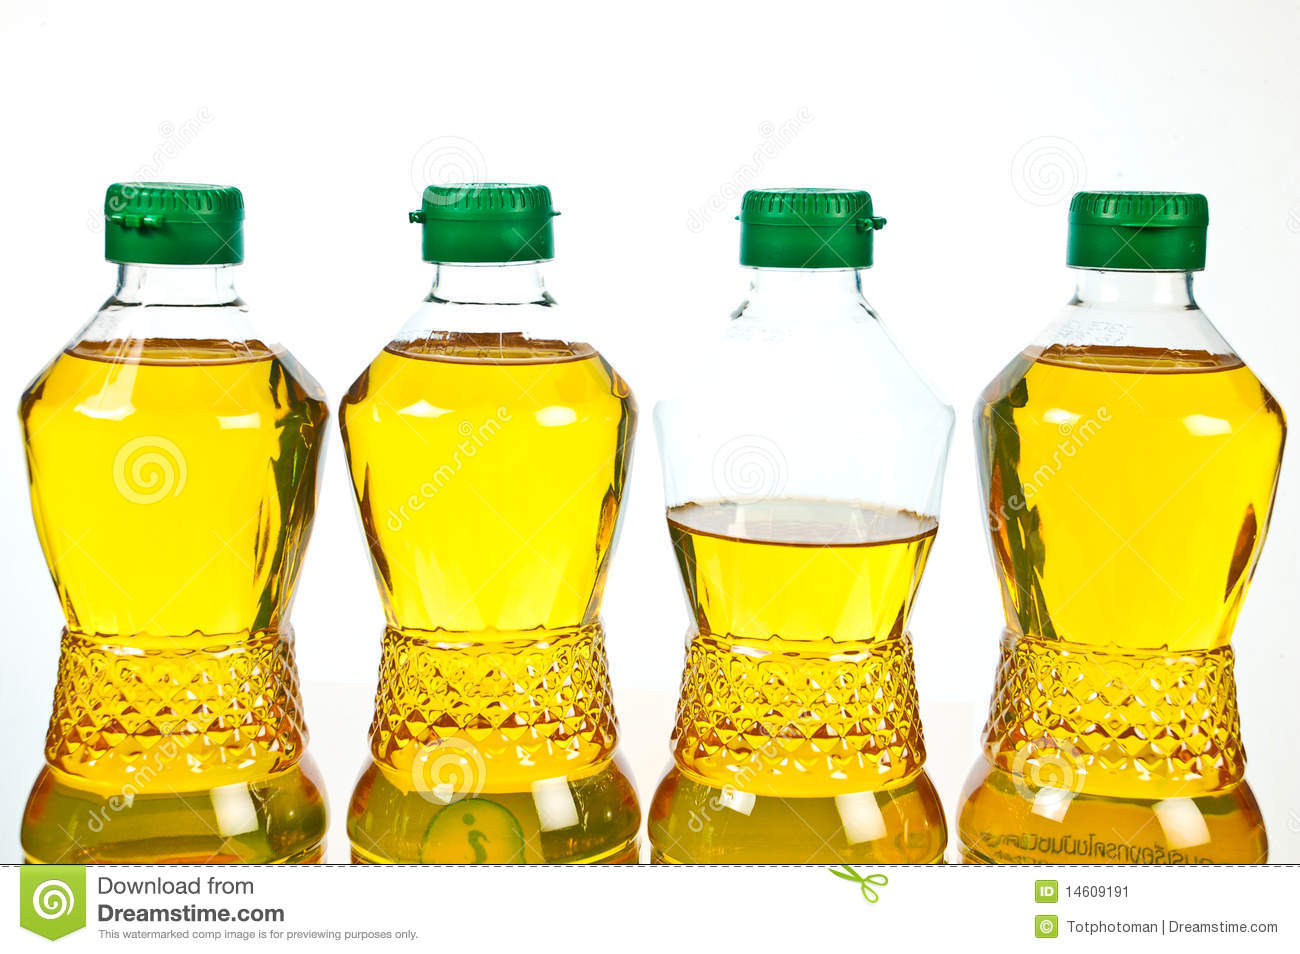 Vegetable Oil Stock Image   Image  14609191